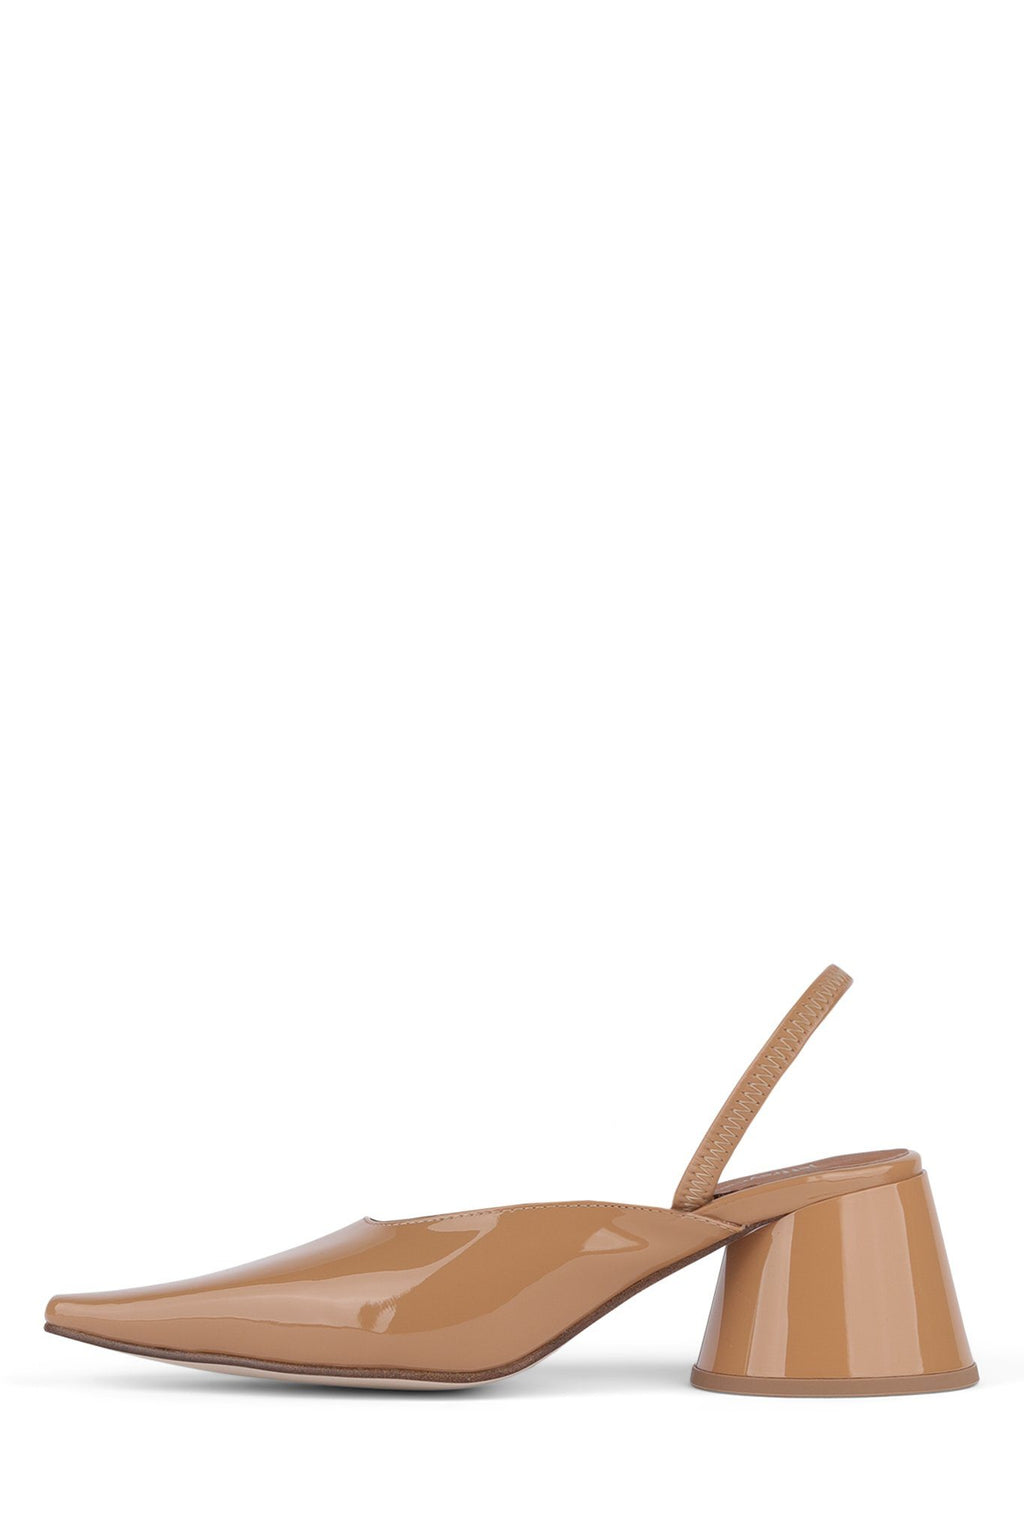 SERRA-S Heeled Mule YYH Nude Patent 6